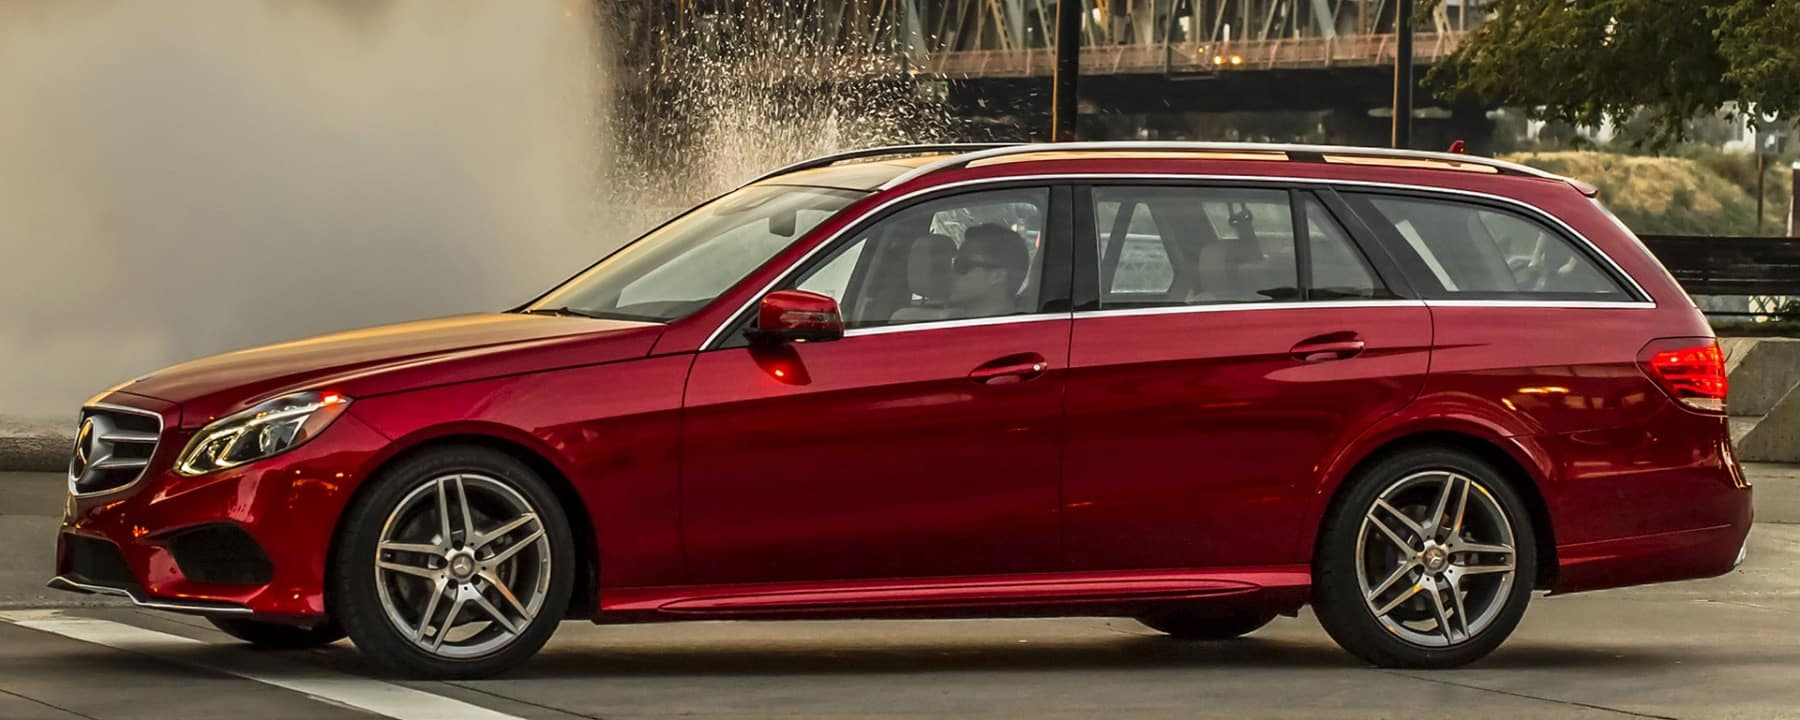 Discovering the new amg e class wagon mercedes benz of for Mercedes benz of buffalo